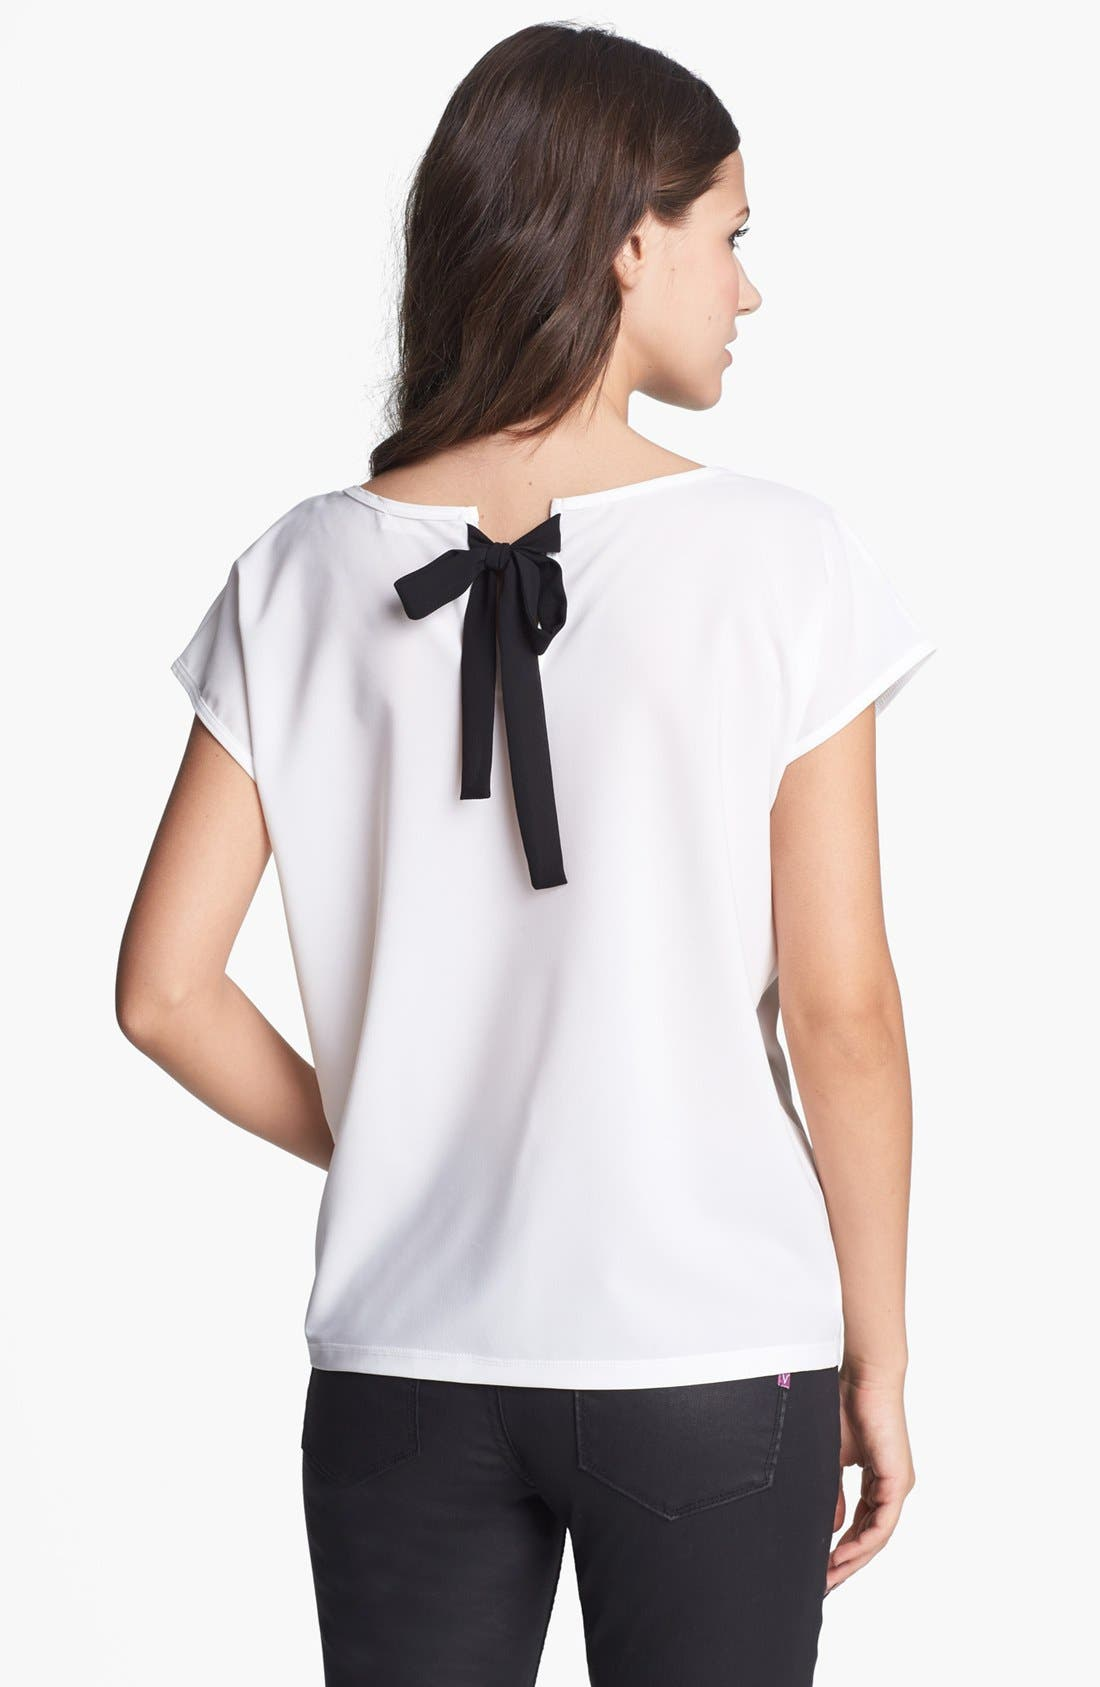 Alternate Image 1 Selected - Elodie Tie Back Tee (Juniors)